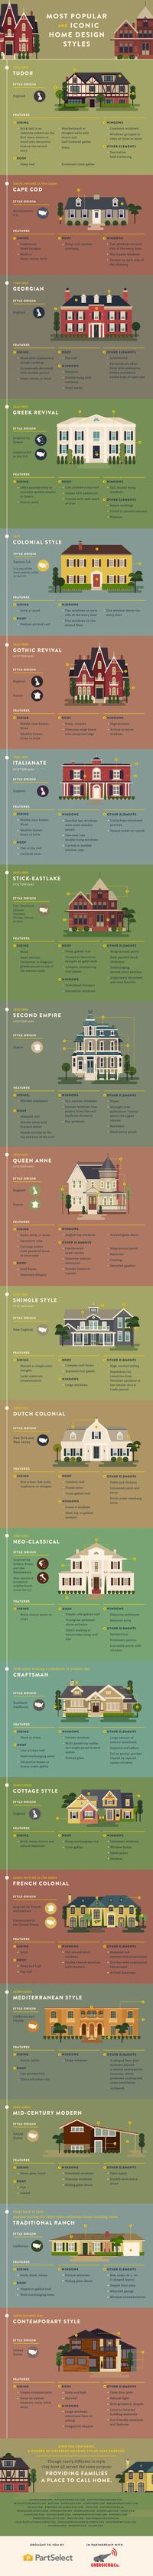 Home Exterior Design Style Guide - In The New House Designs